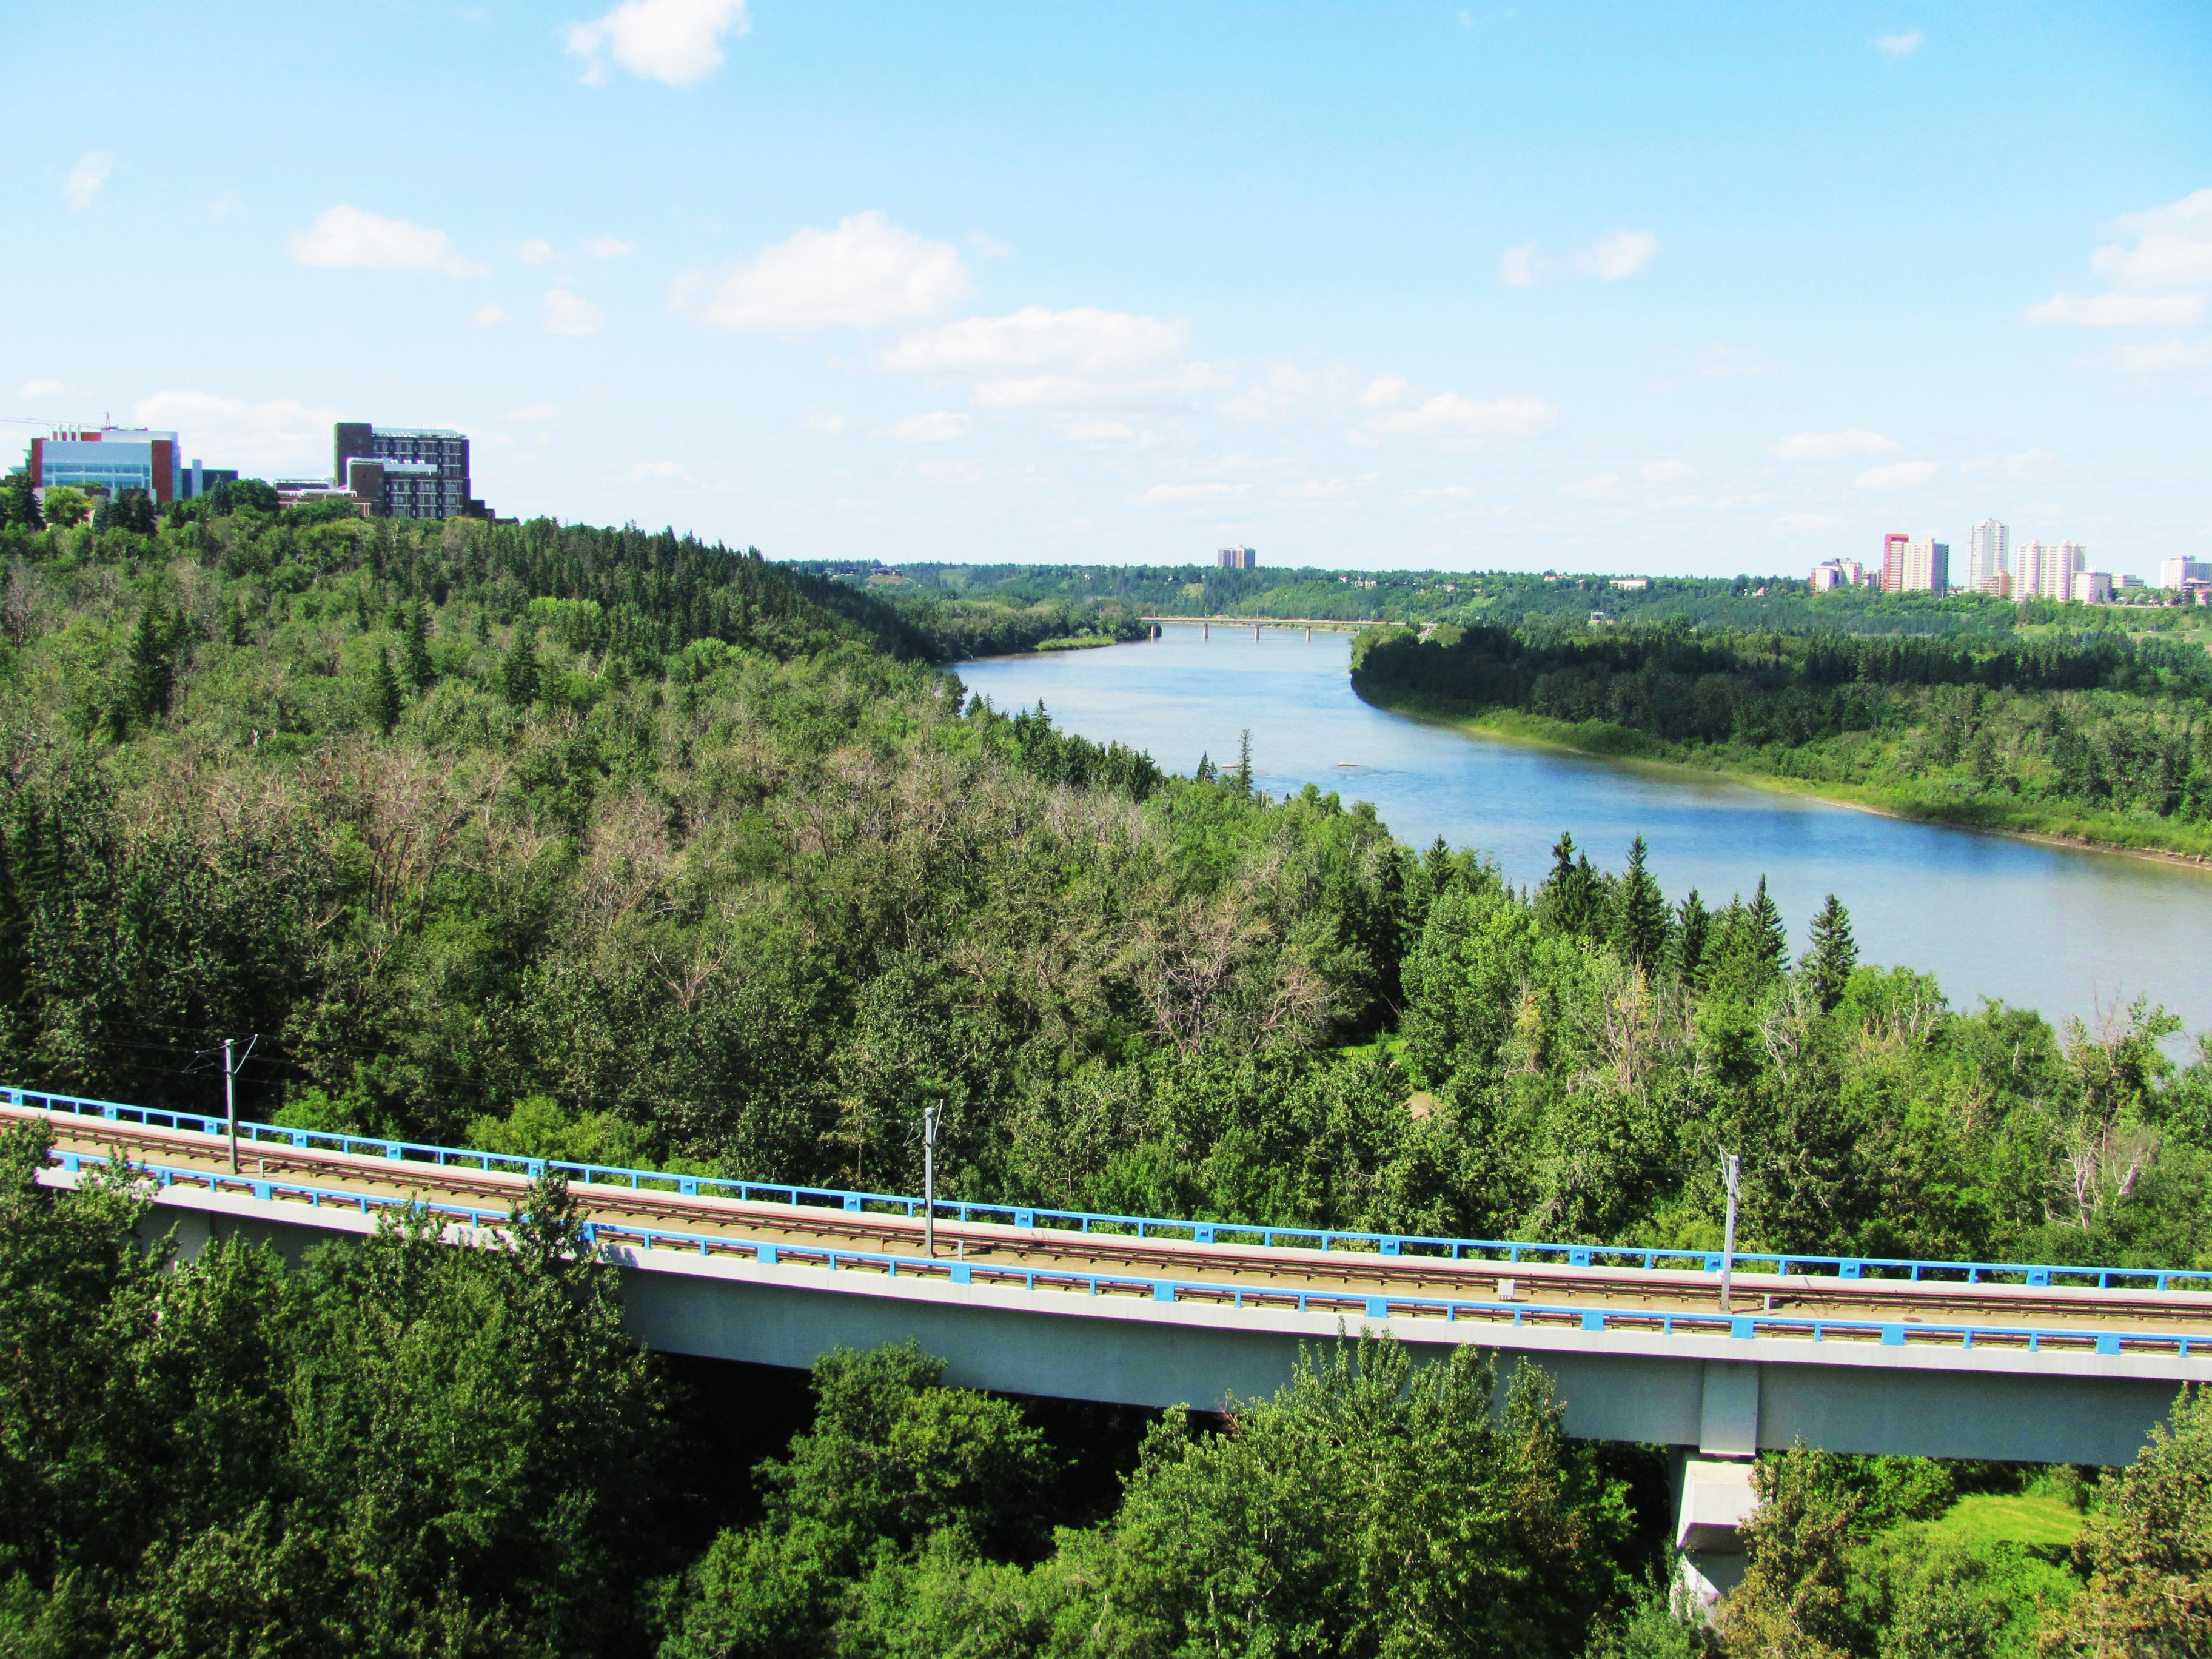 11 big facts about Edmonton you probably didn't know